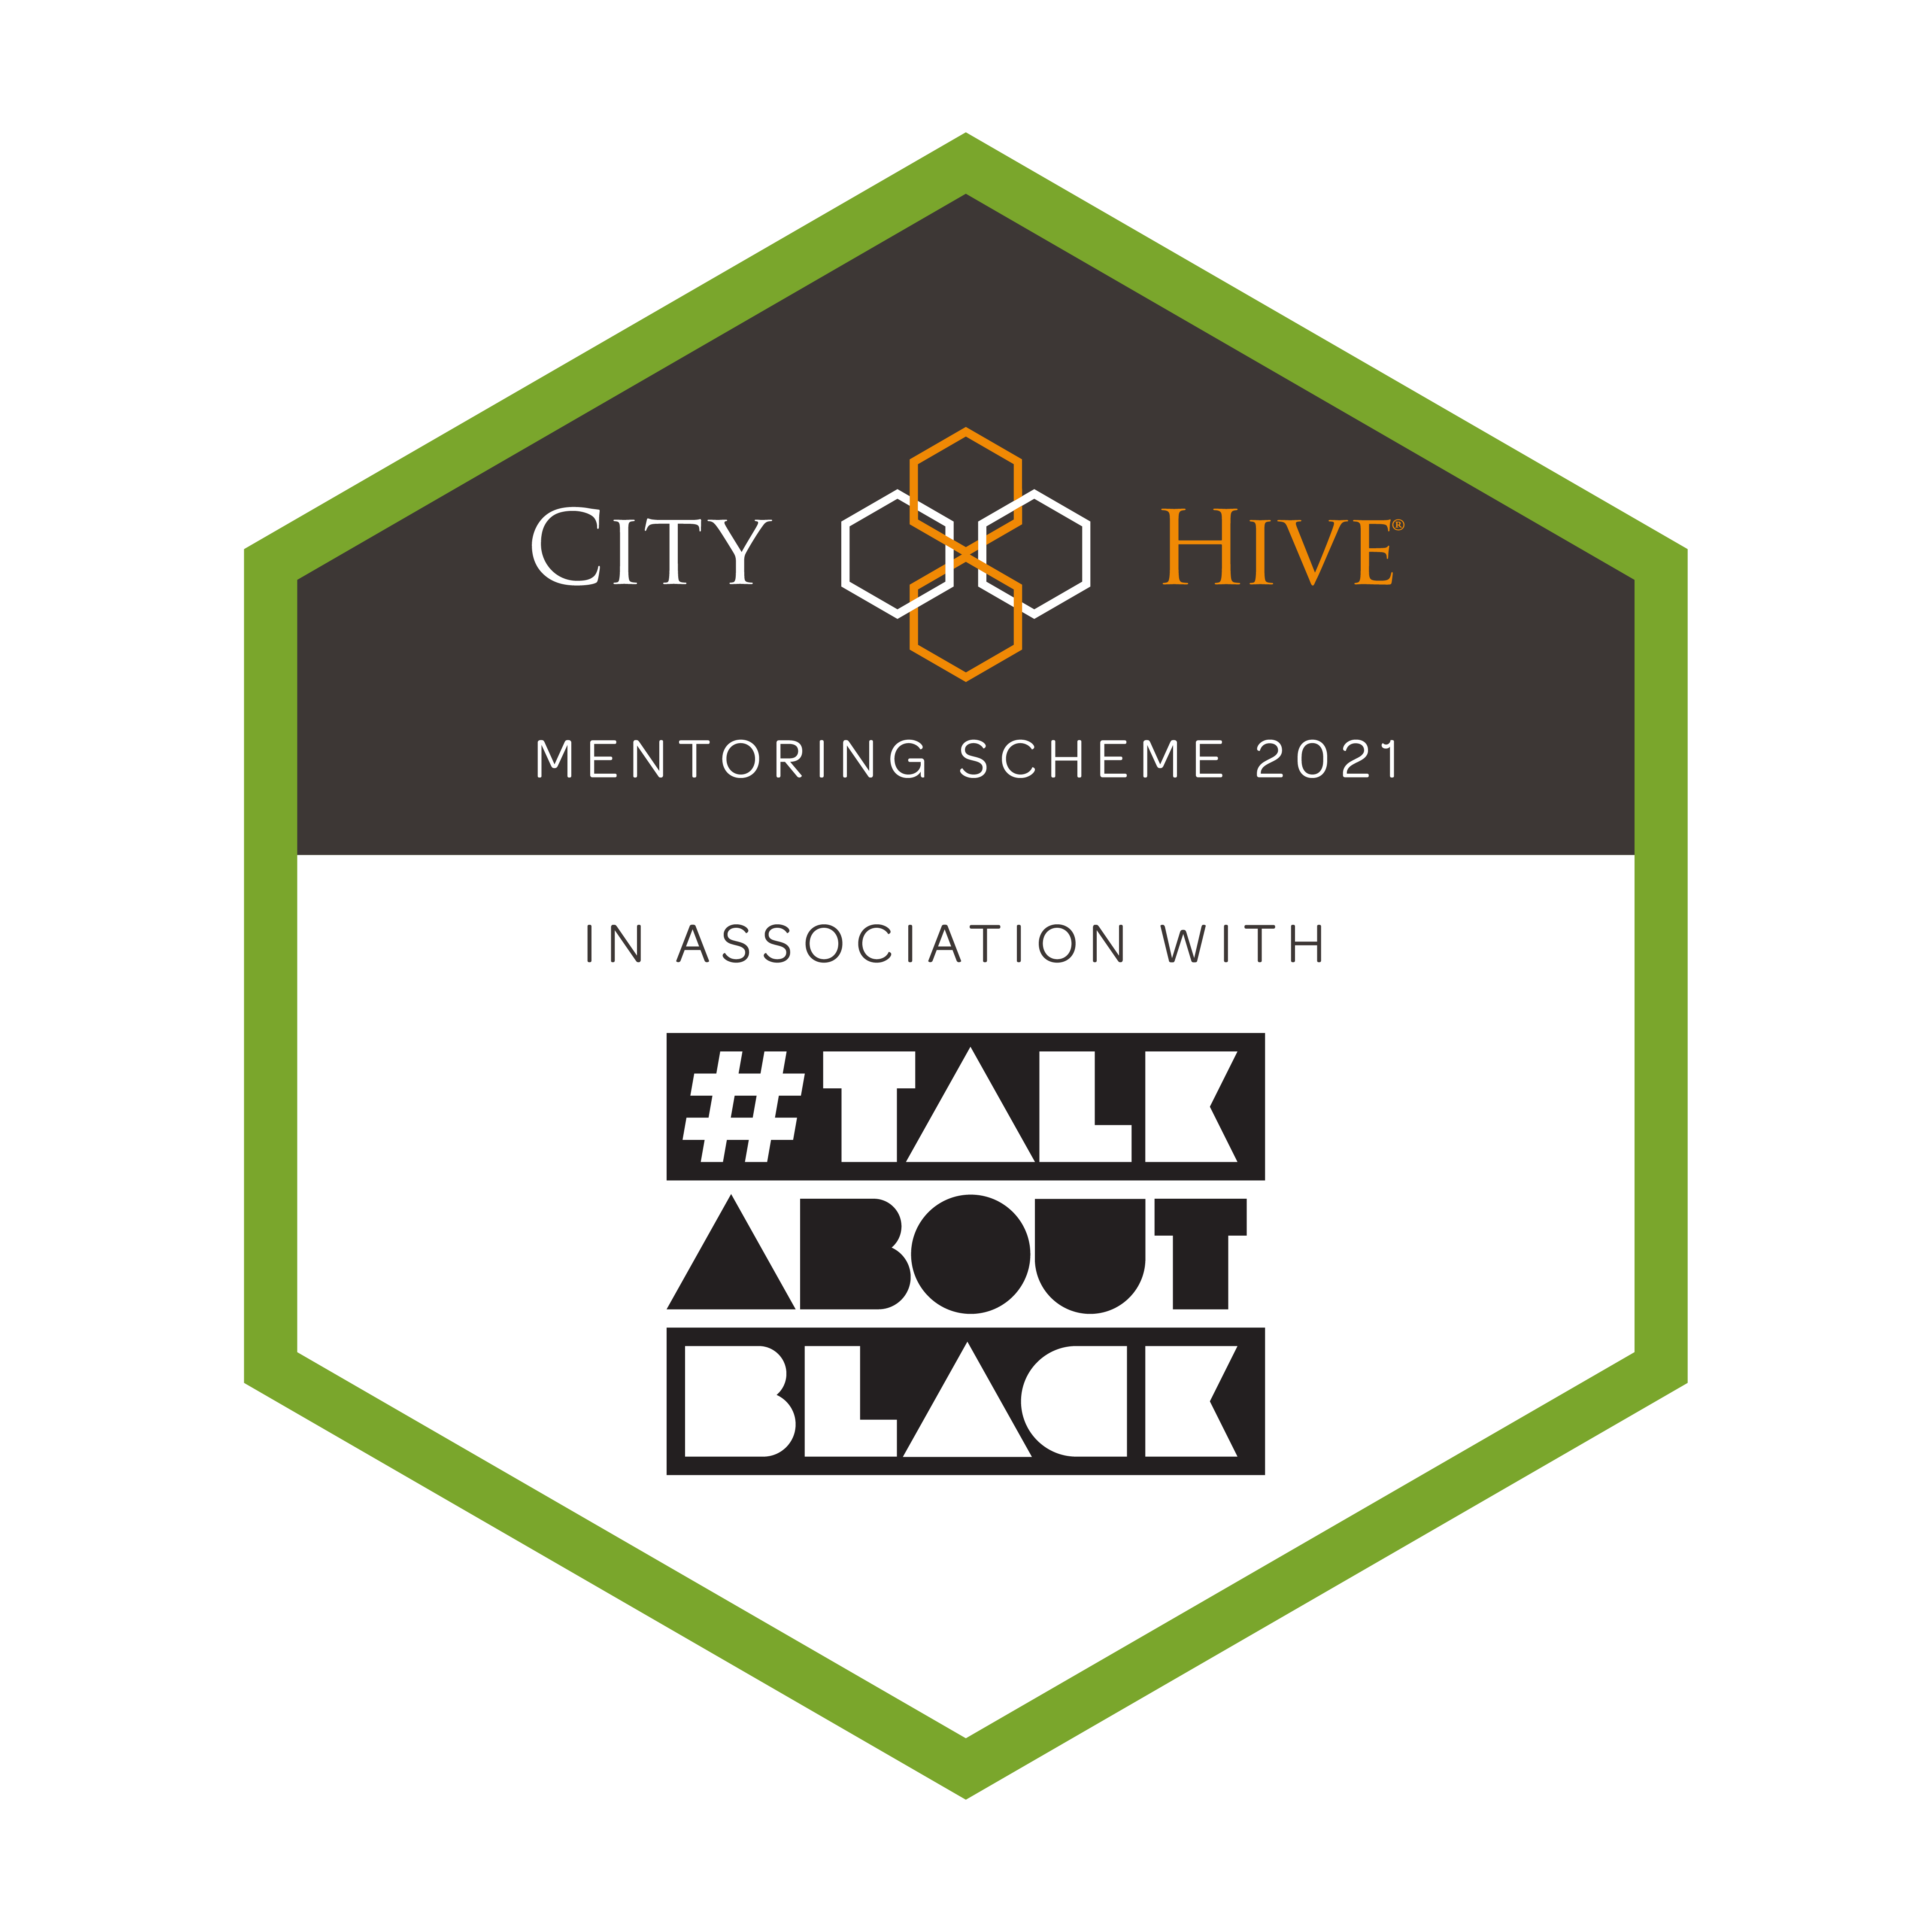 Special Event: Join City Hive & #Talkaboutblack to learn more about our 2021 Cross-Company Mentoring Scheme